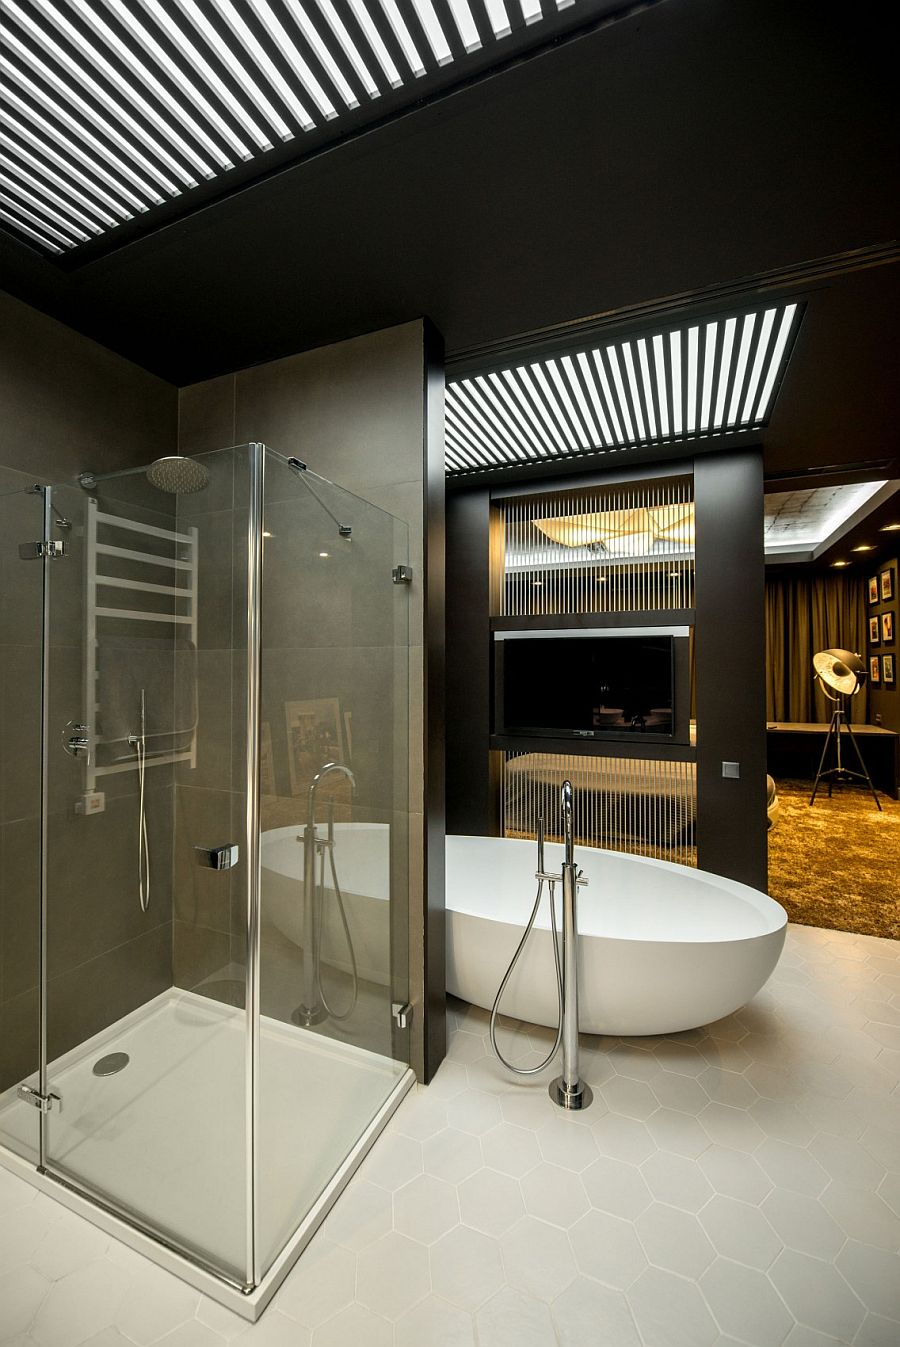 Shower area and bathtub connected to the bedroom